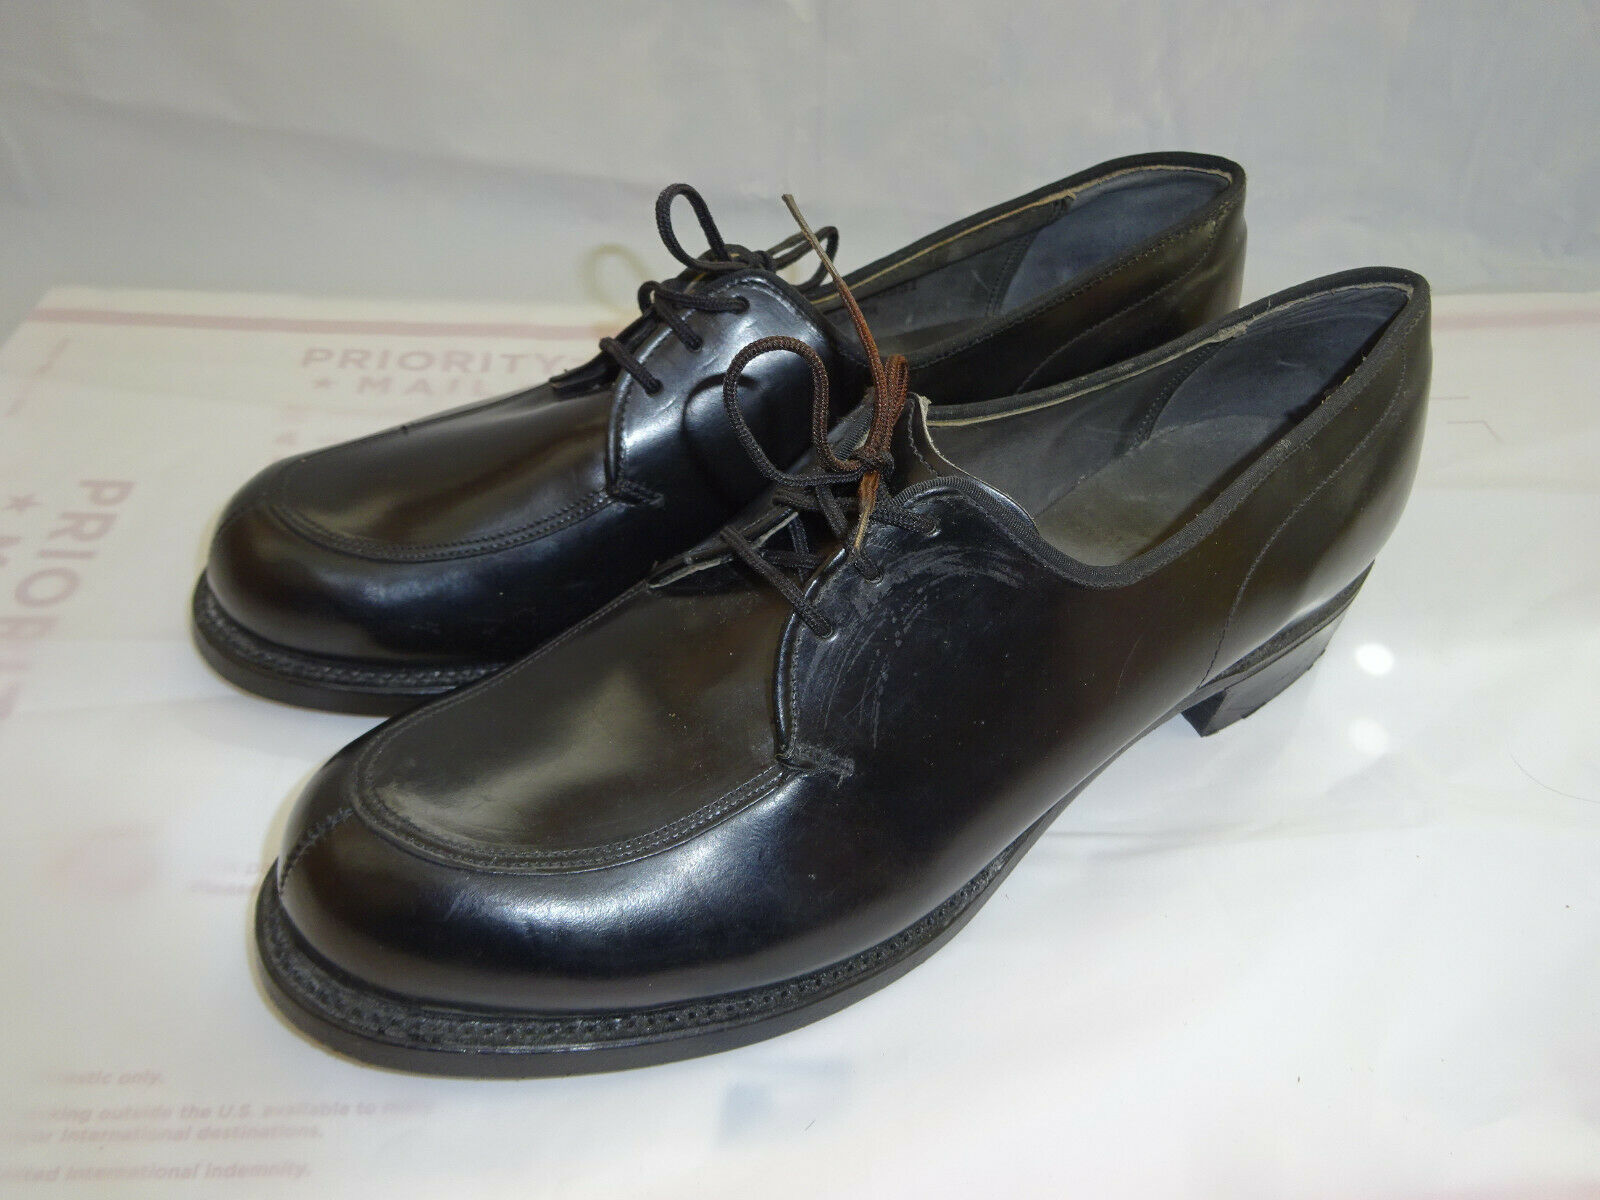 Vintage Années 70 WEINBRENNER Femme Sz 9 A Cuir noir Militaire Robe chaussures New New Old Stock